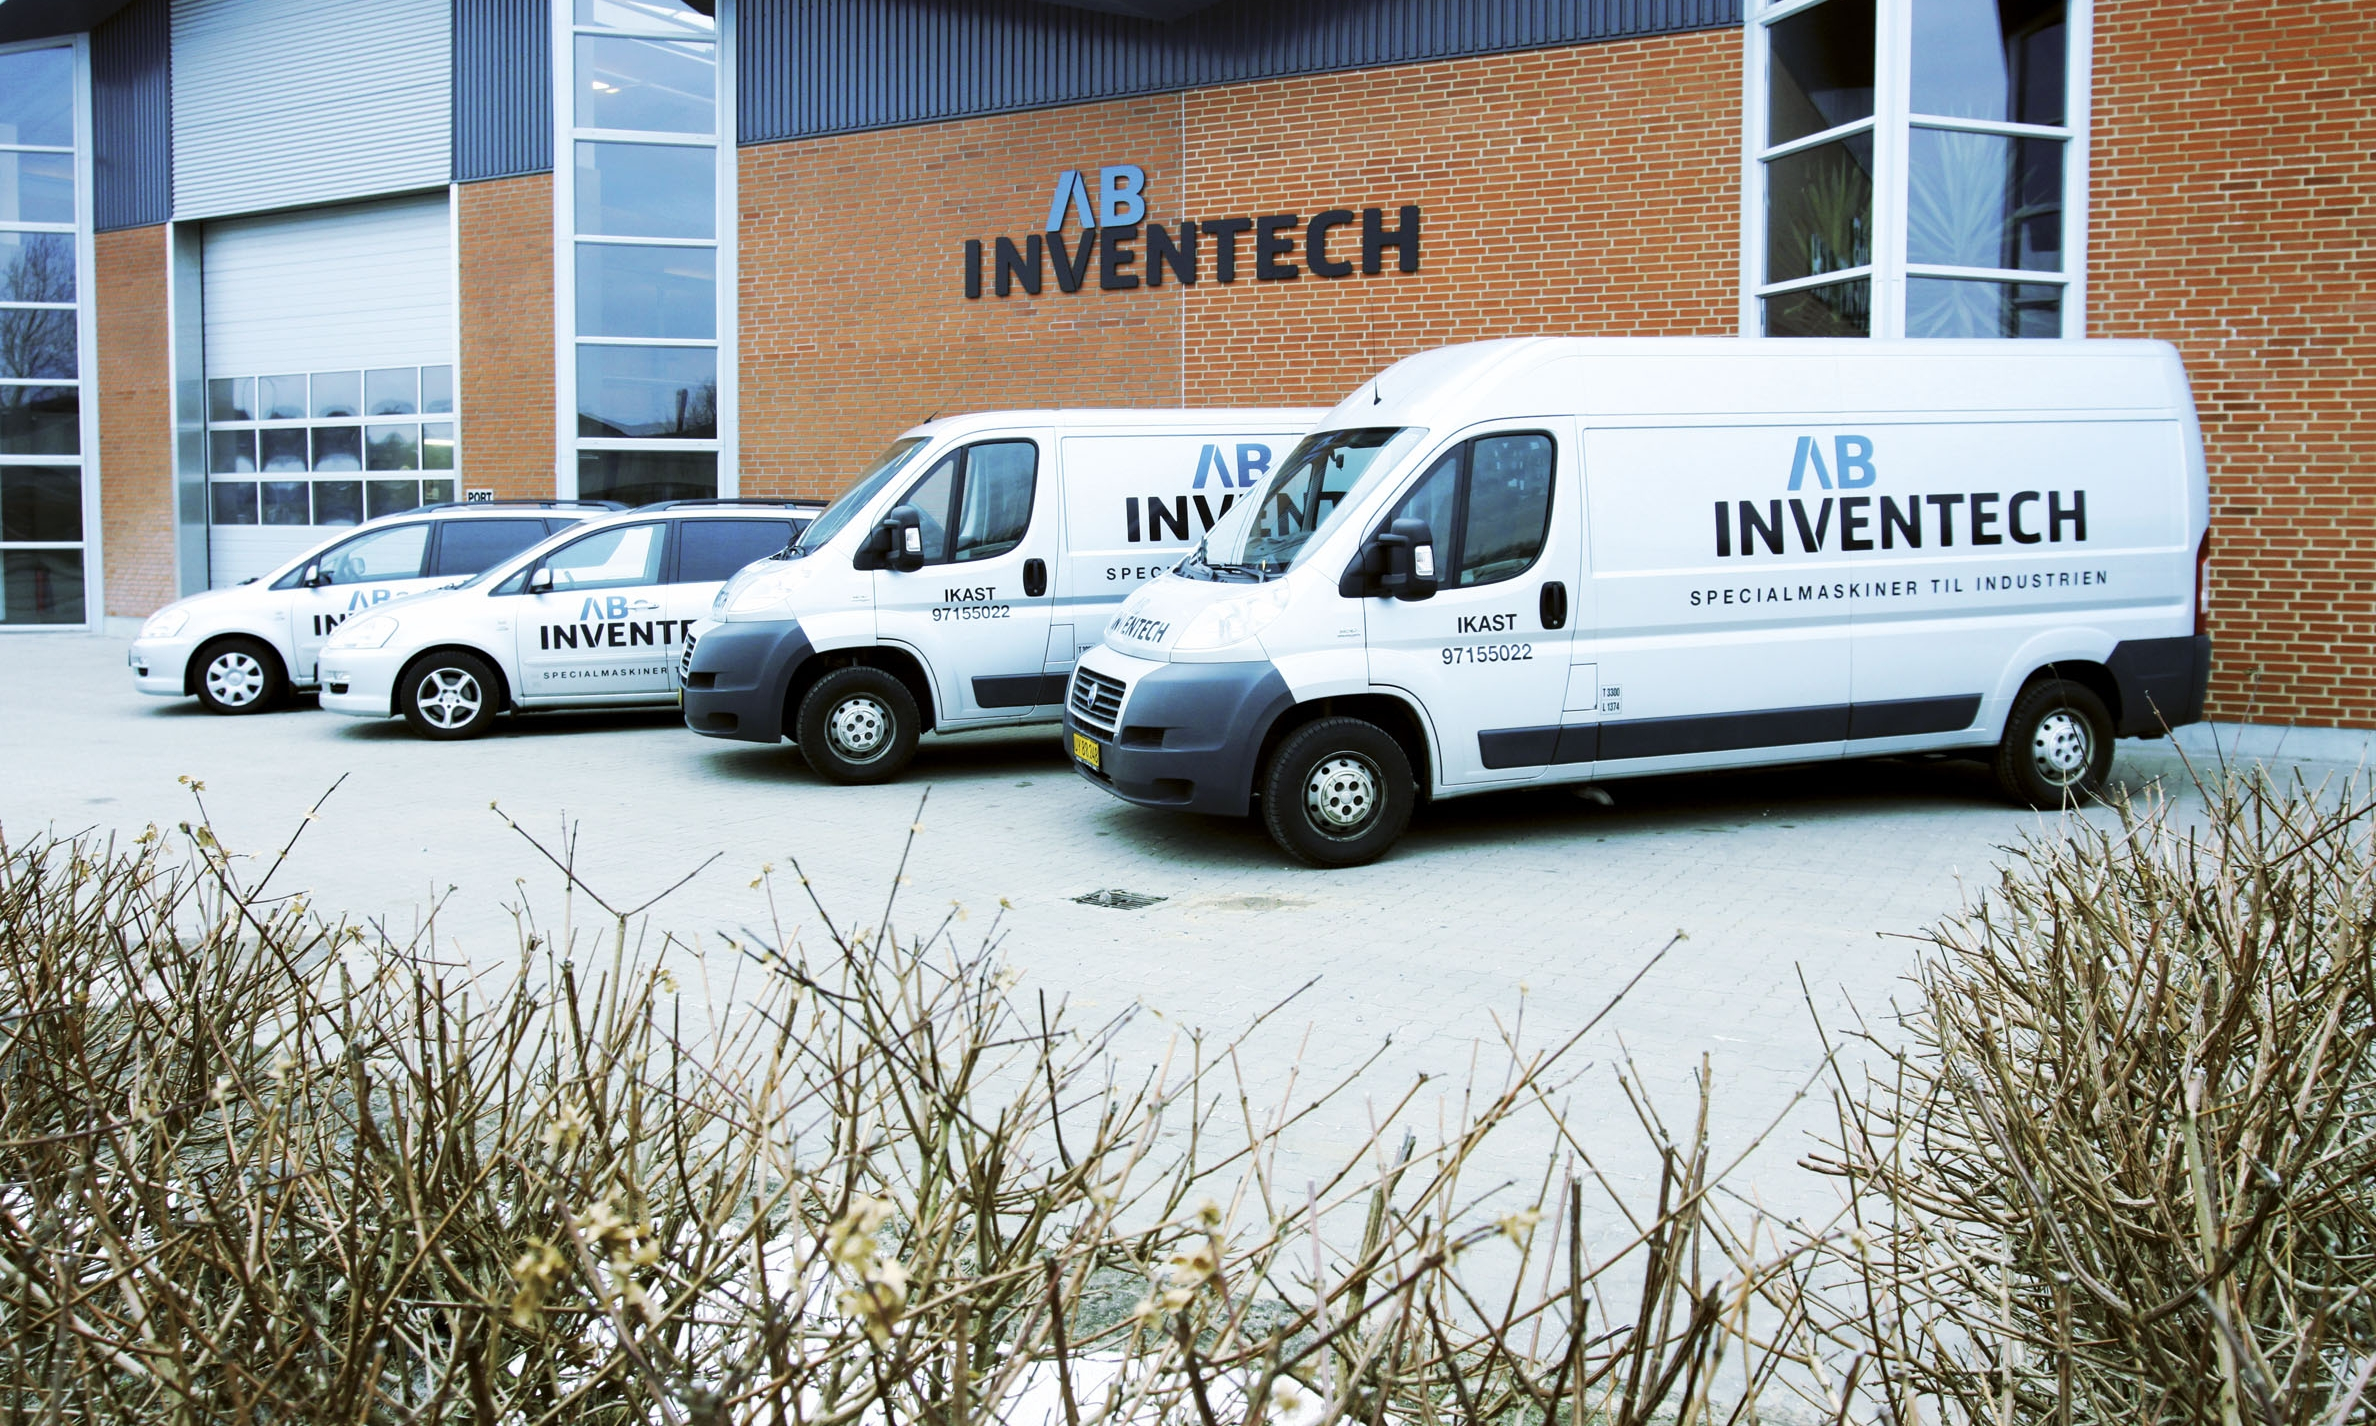 FAST ASSISTANCE WHEN YOU NEED IT  Very few companies earn money when their production equipment has stopped running. Consequently, AB Inventech A/S has established an extended servicing scheme for our customers. The extended servicing scheme means you will get fast and efficient assistance if your equipment fails - even outside normal working hours. We will send our highly-professional service team and an experienced machinery manufacturer whenever you need them.